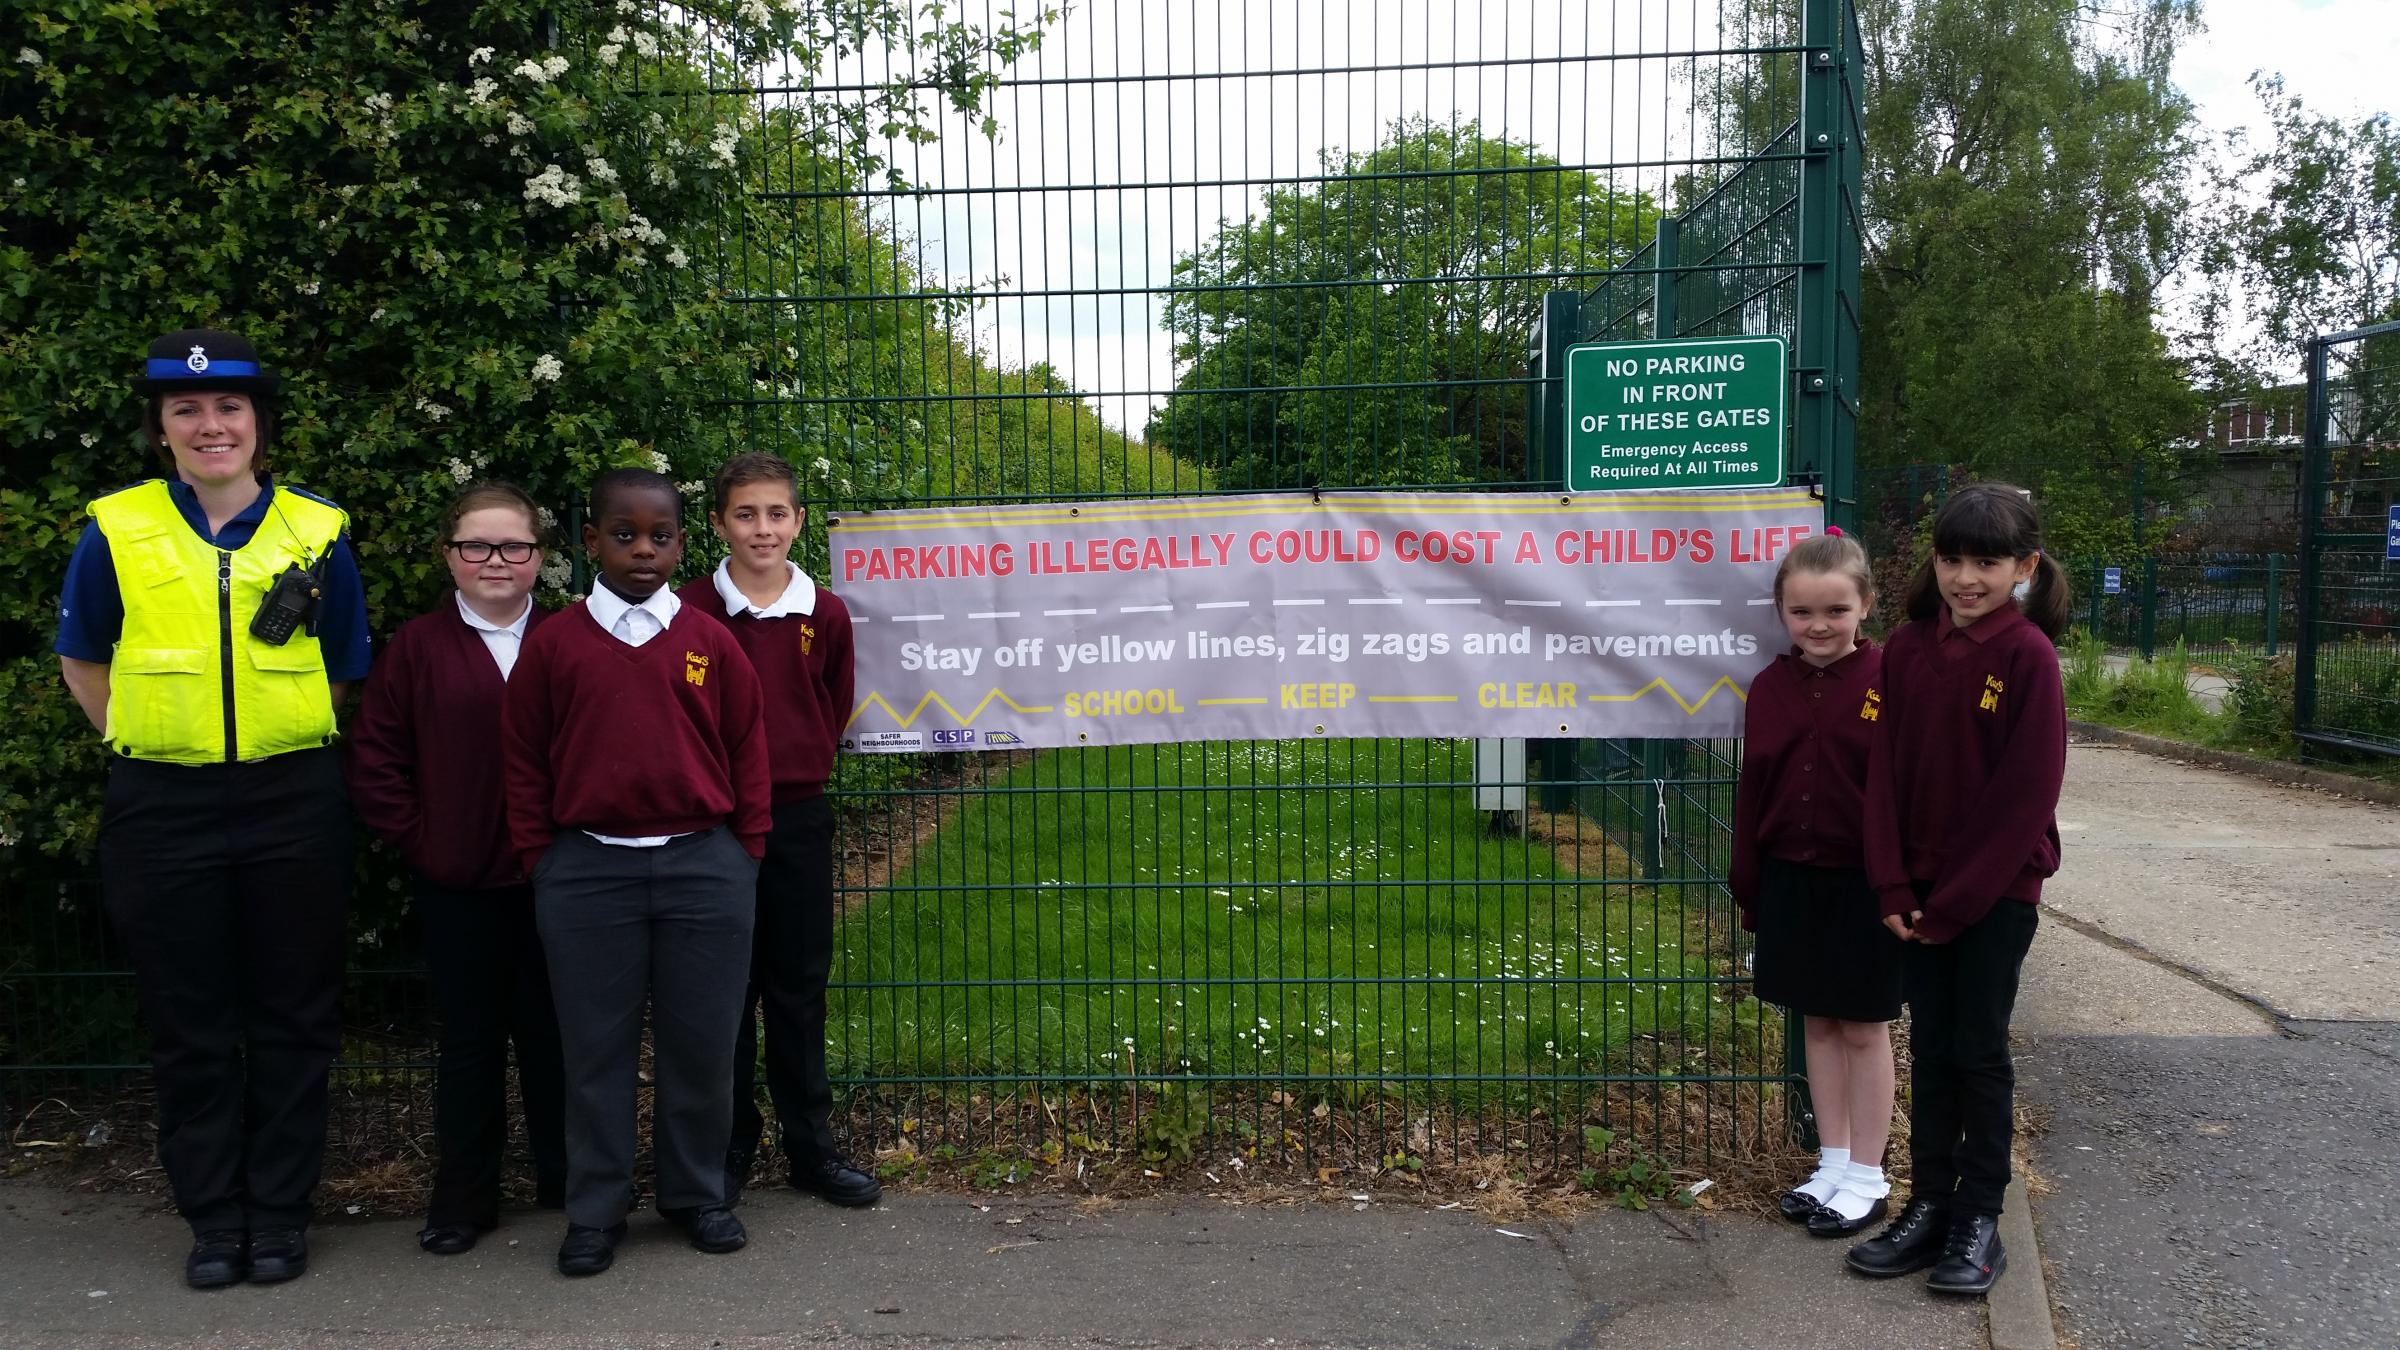 Eye-catching banners, funded by the Hertsmere Community Safety Partnership, were put up outside the school after the assembly educating pupils on the rules of the road